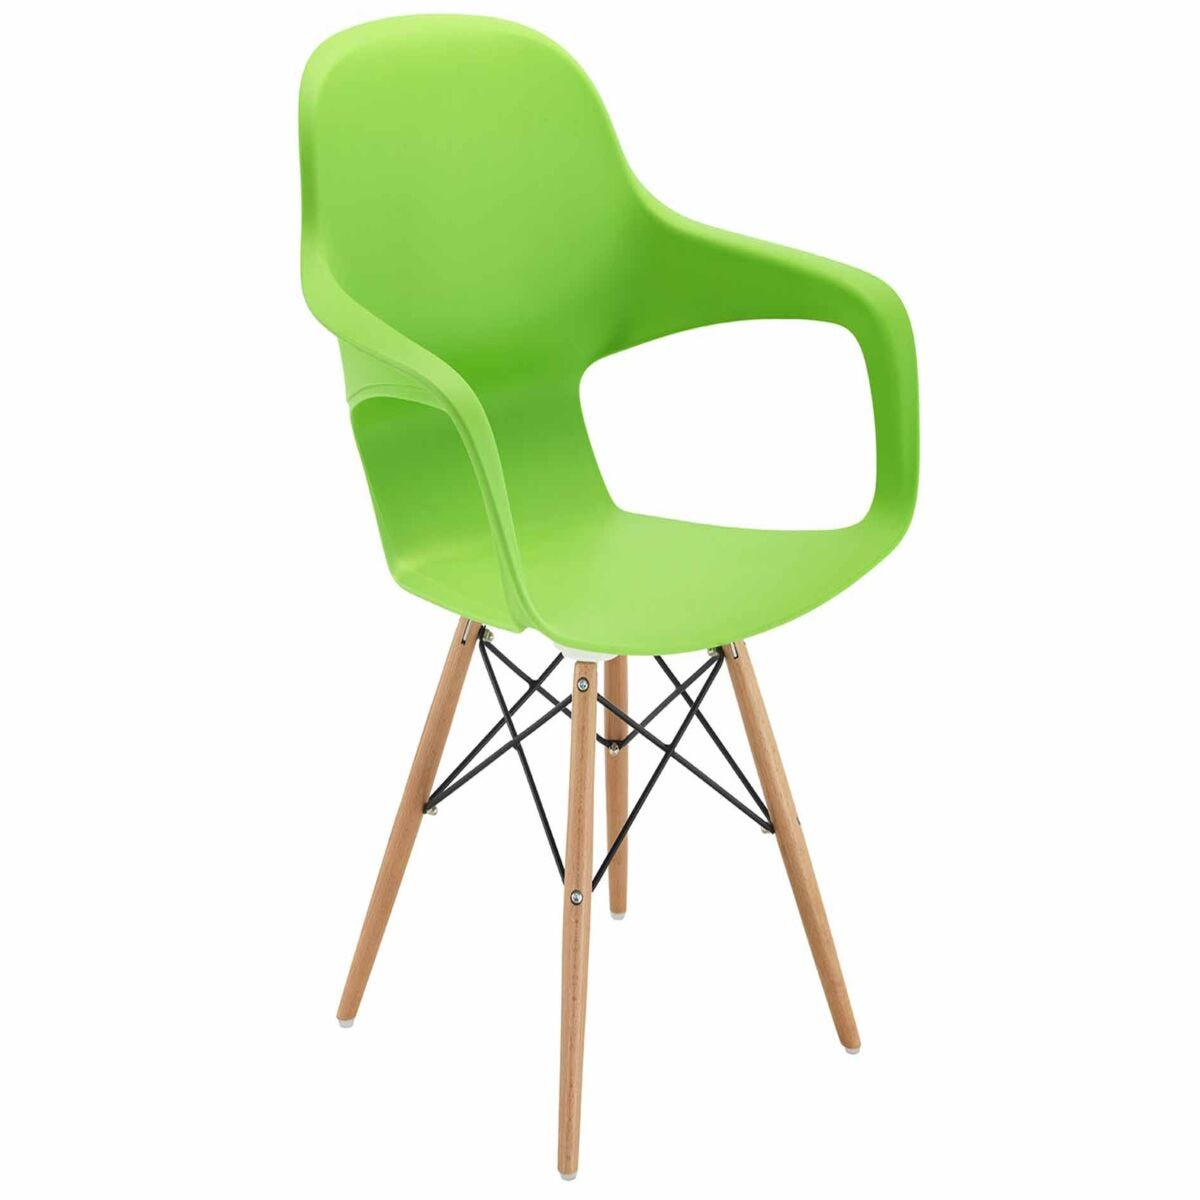 TC Office Ariel 2 Retro Chair with Wooden and Wire Base